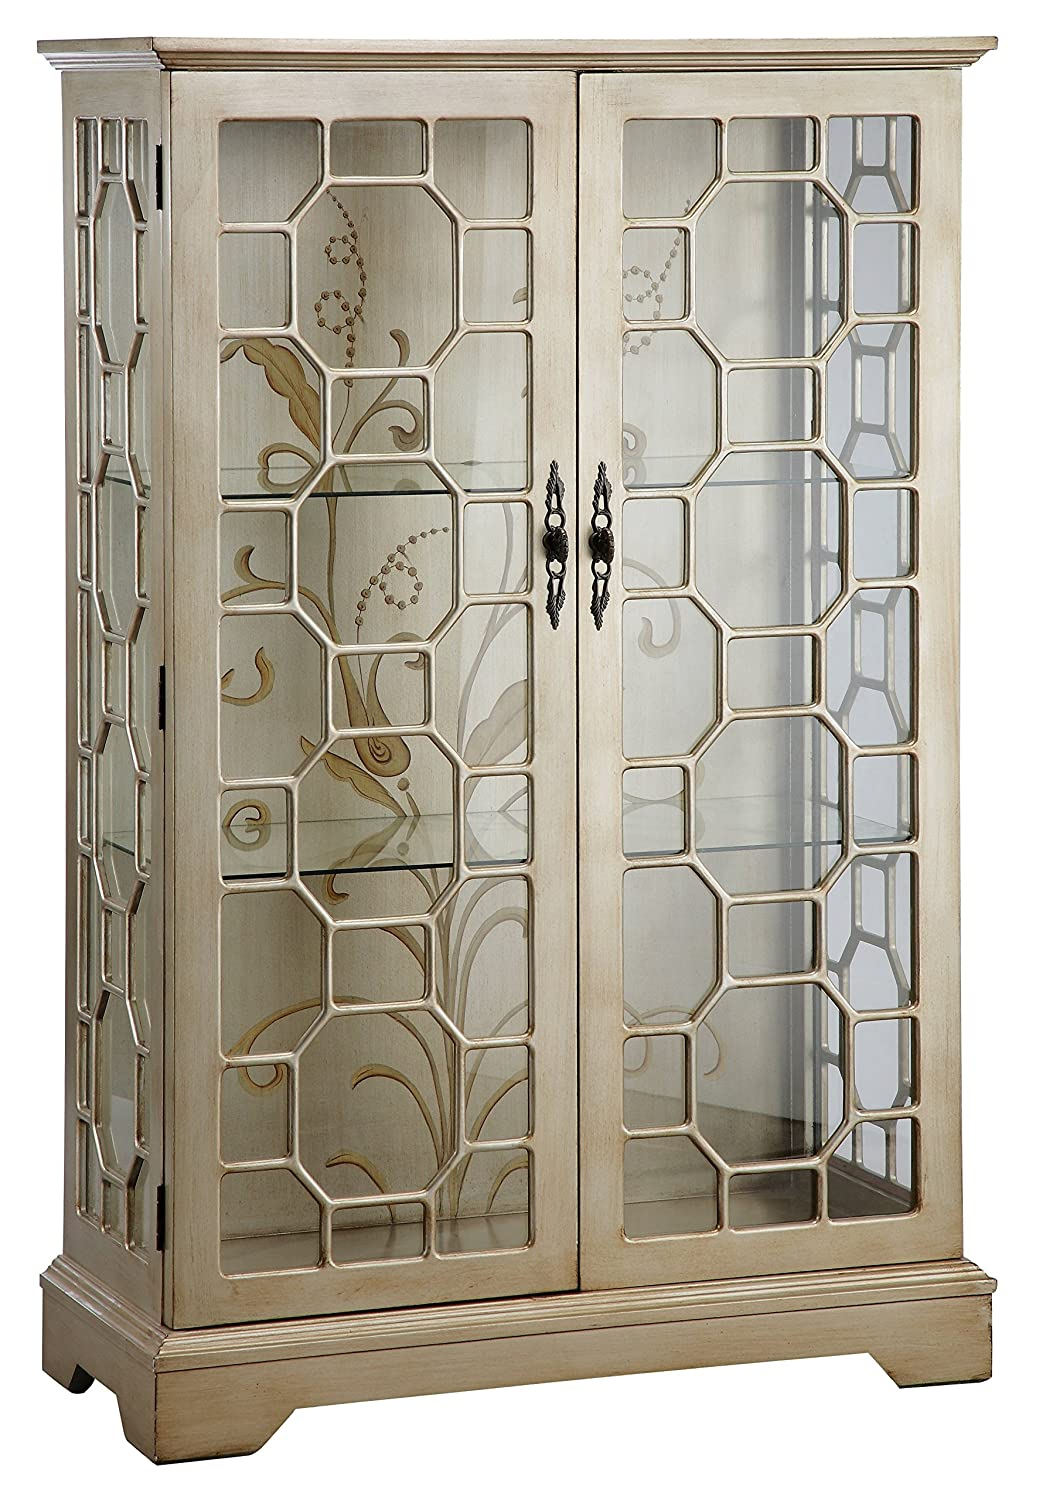 Amazing Amazon.com: Stein World Furniture Diana Display Cabinet, Silver, Gold:  Kitchen U0026 Dining